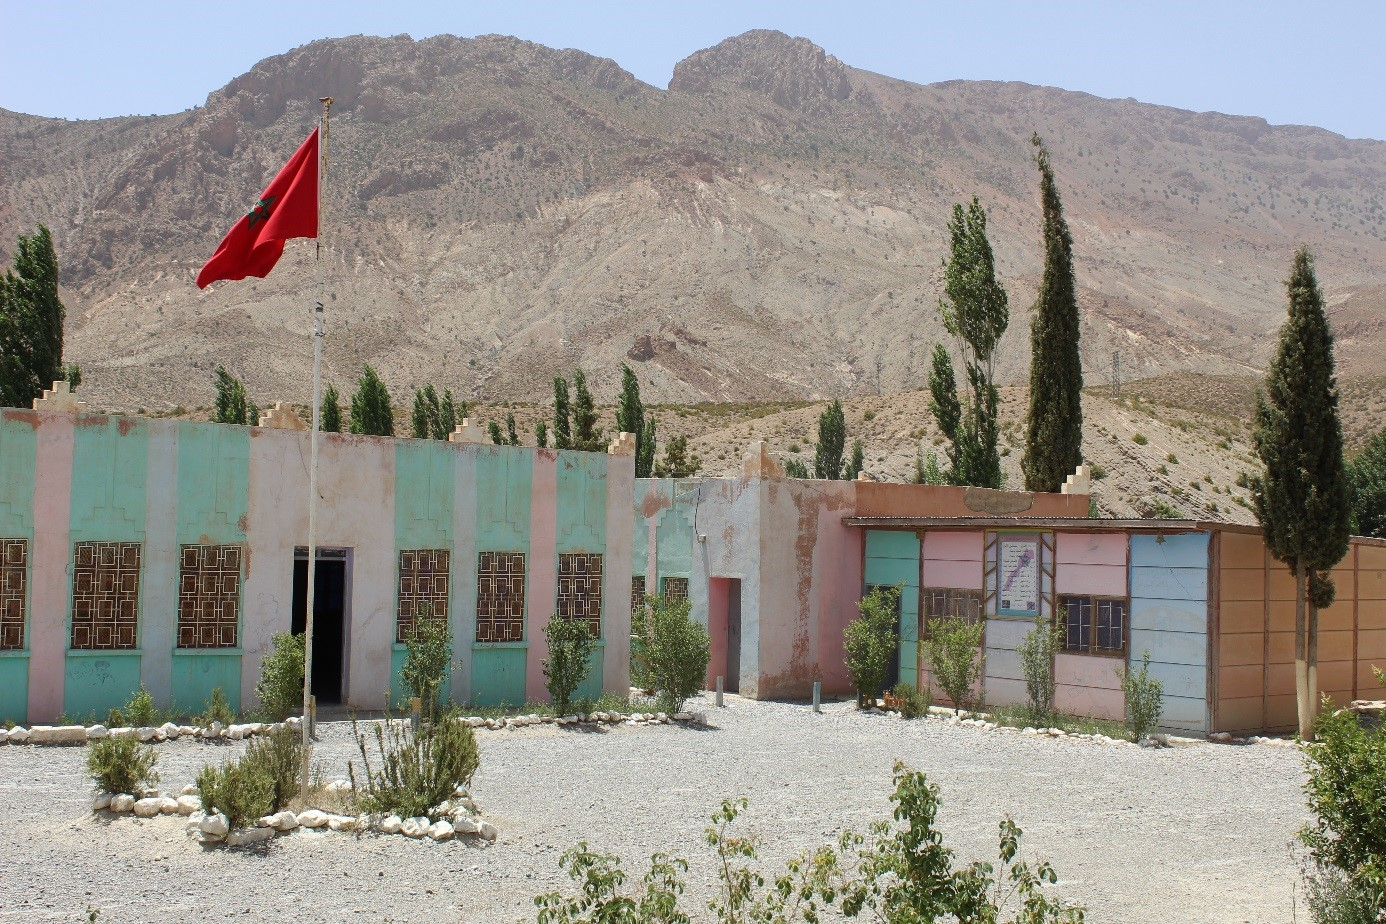 Typical mountain school, stone classroom, concrete classroom, prefabricated classroom. Wood coal stove for heating Morocco